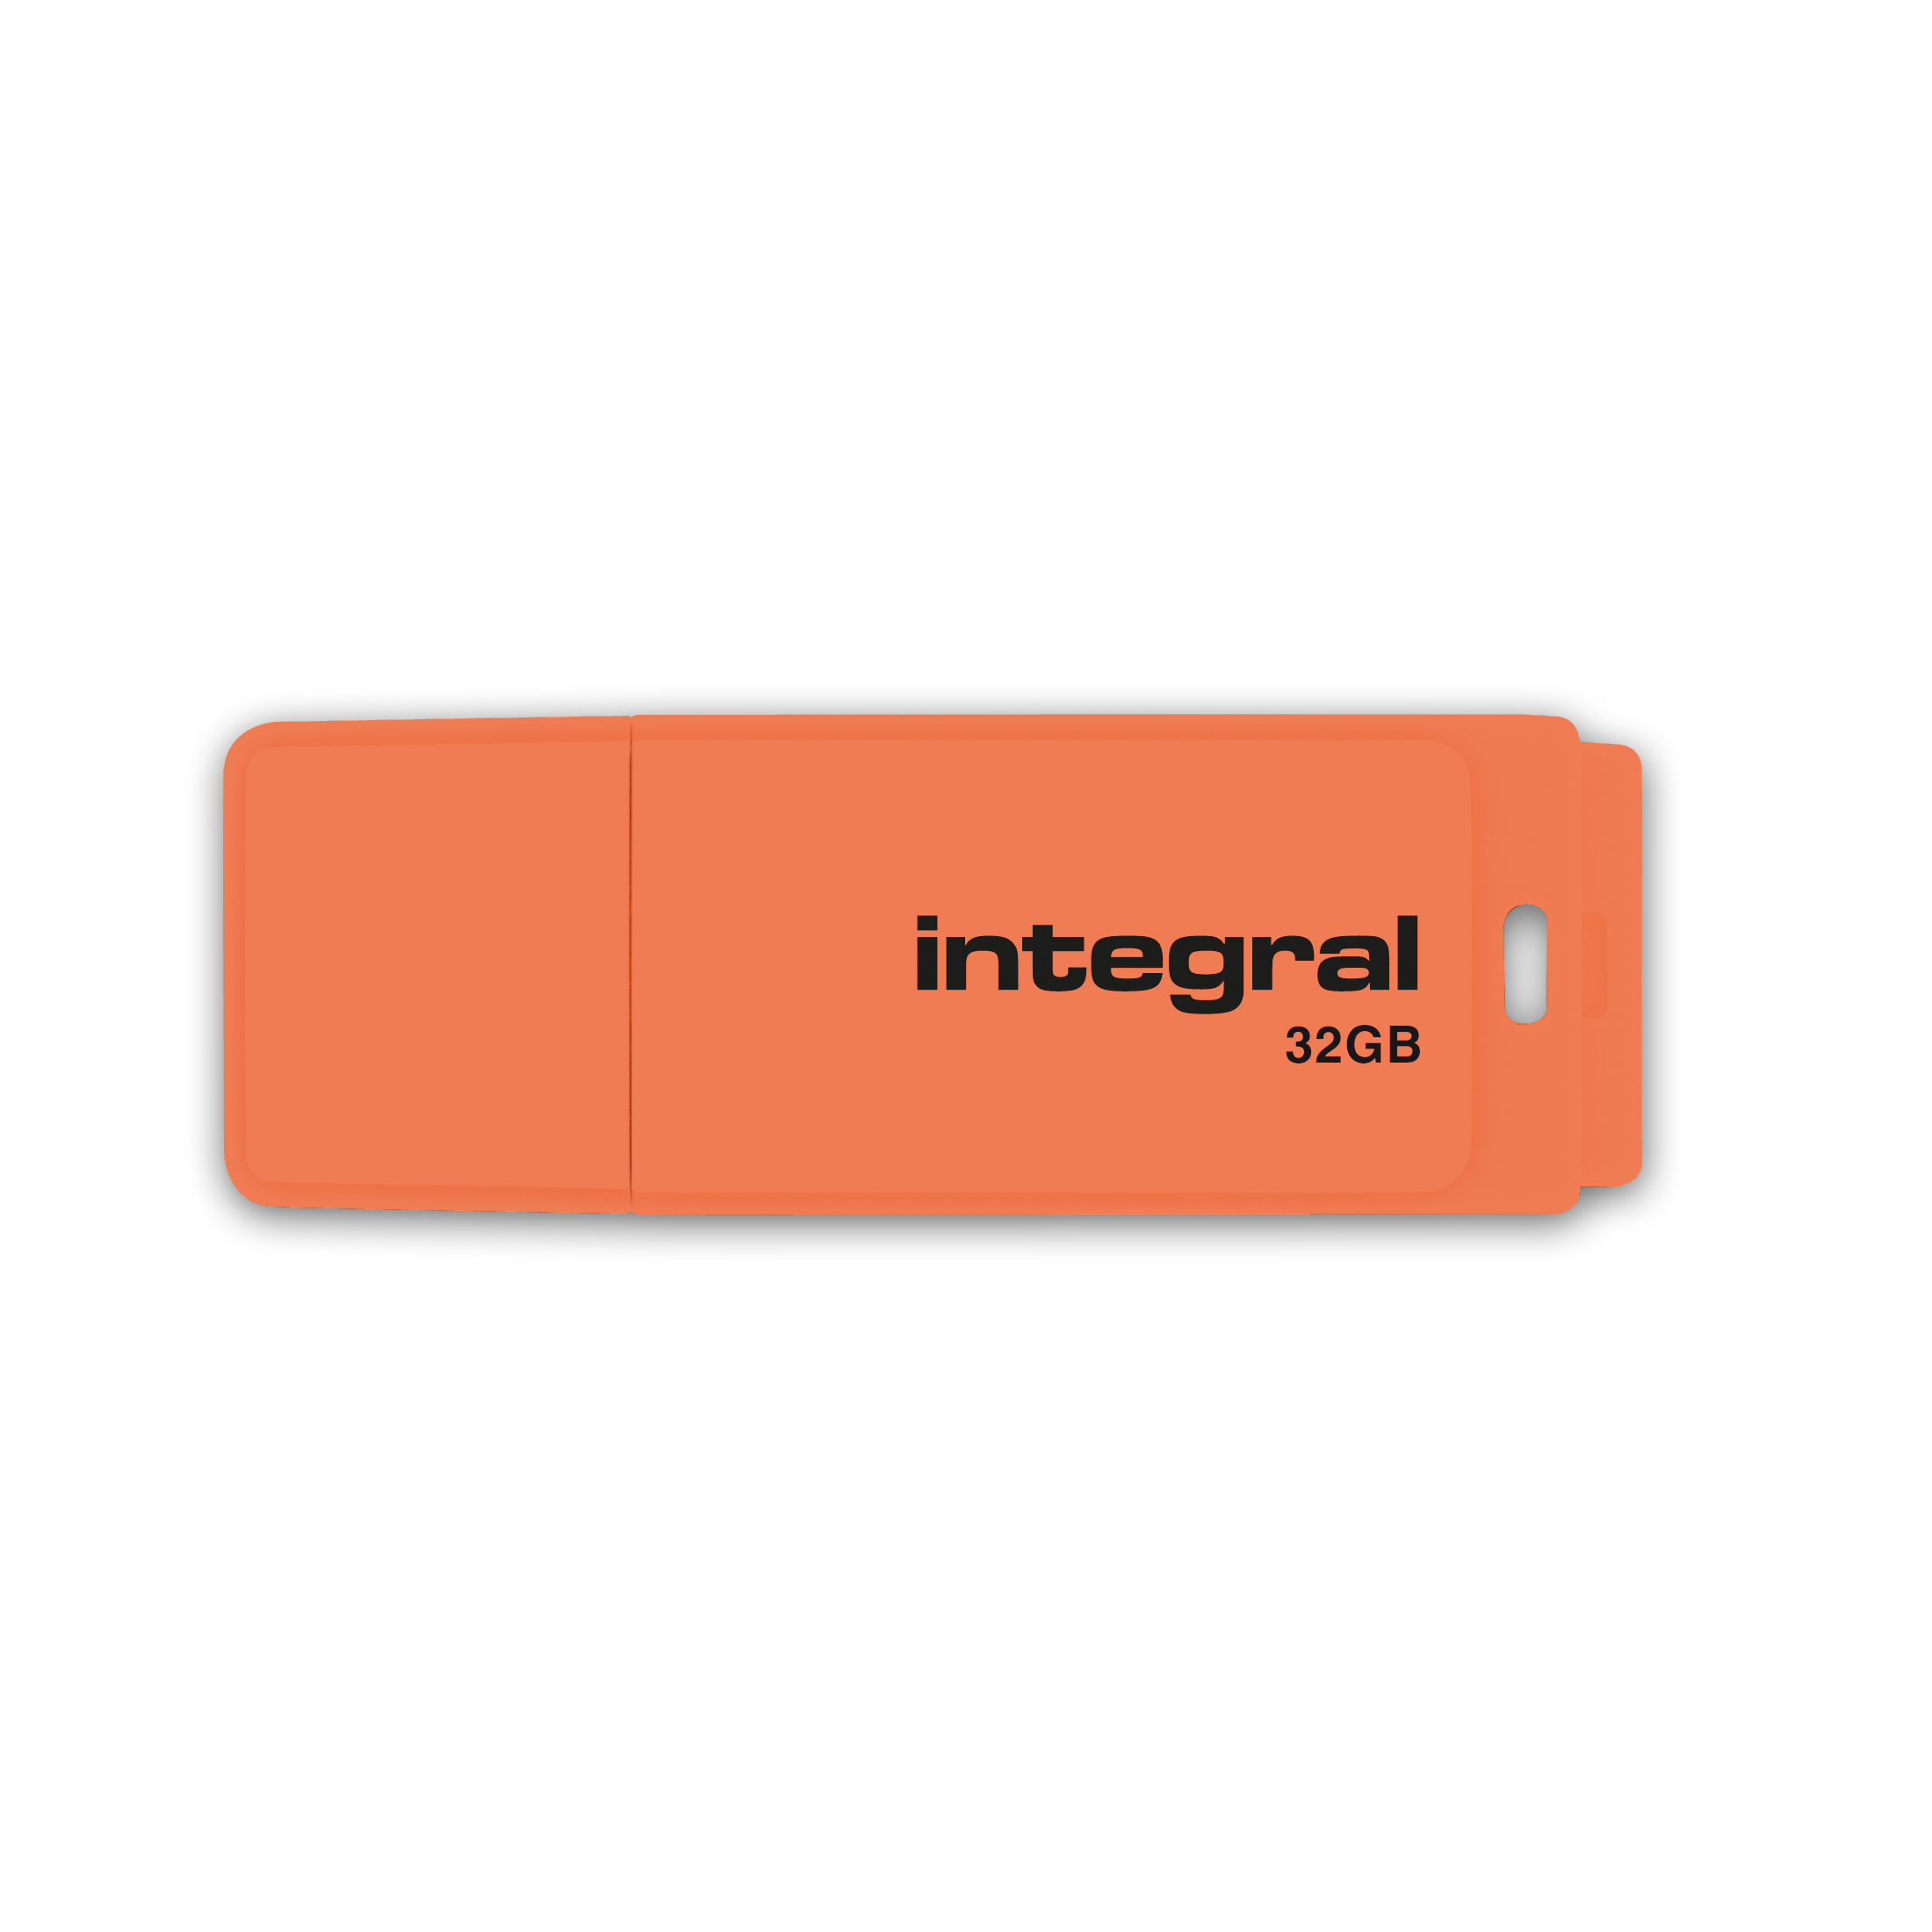 Integral Neon USB Drive 2.0 32GB Orange Ref INFD32GBNEONOR